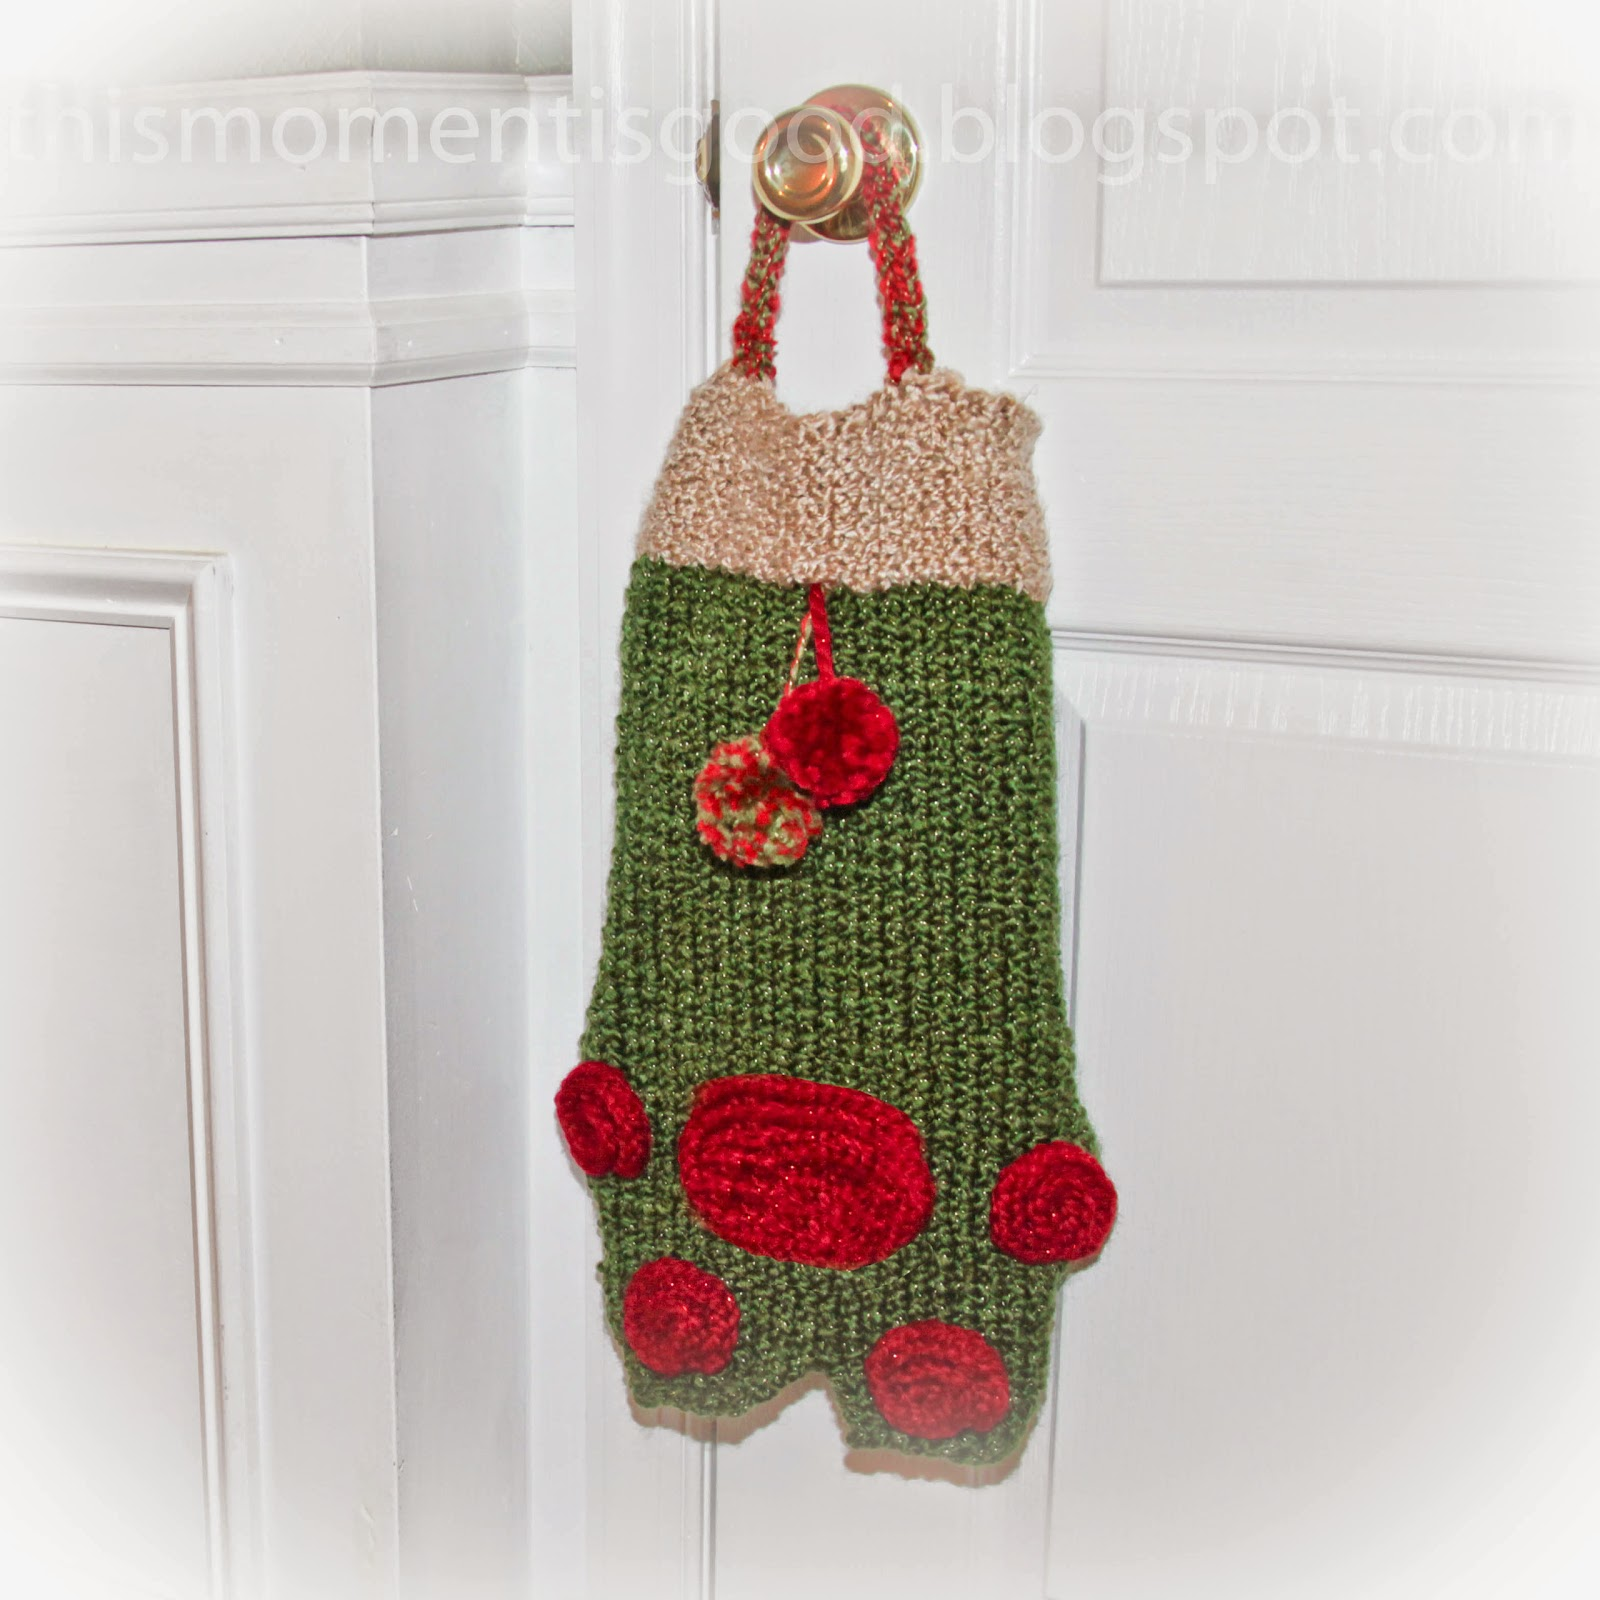 Stocking Knit Stitch On Loom : Loom Knitting by This Moment is Good!: LOOM KNIT PET STOCKING PATTERN...